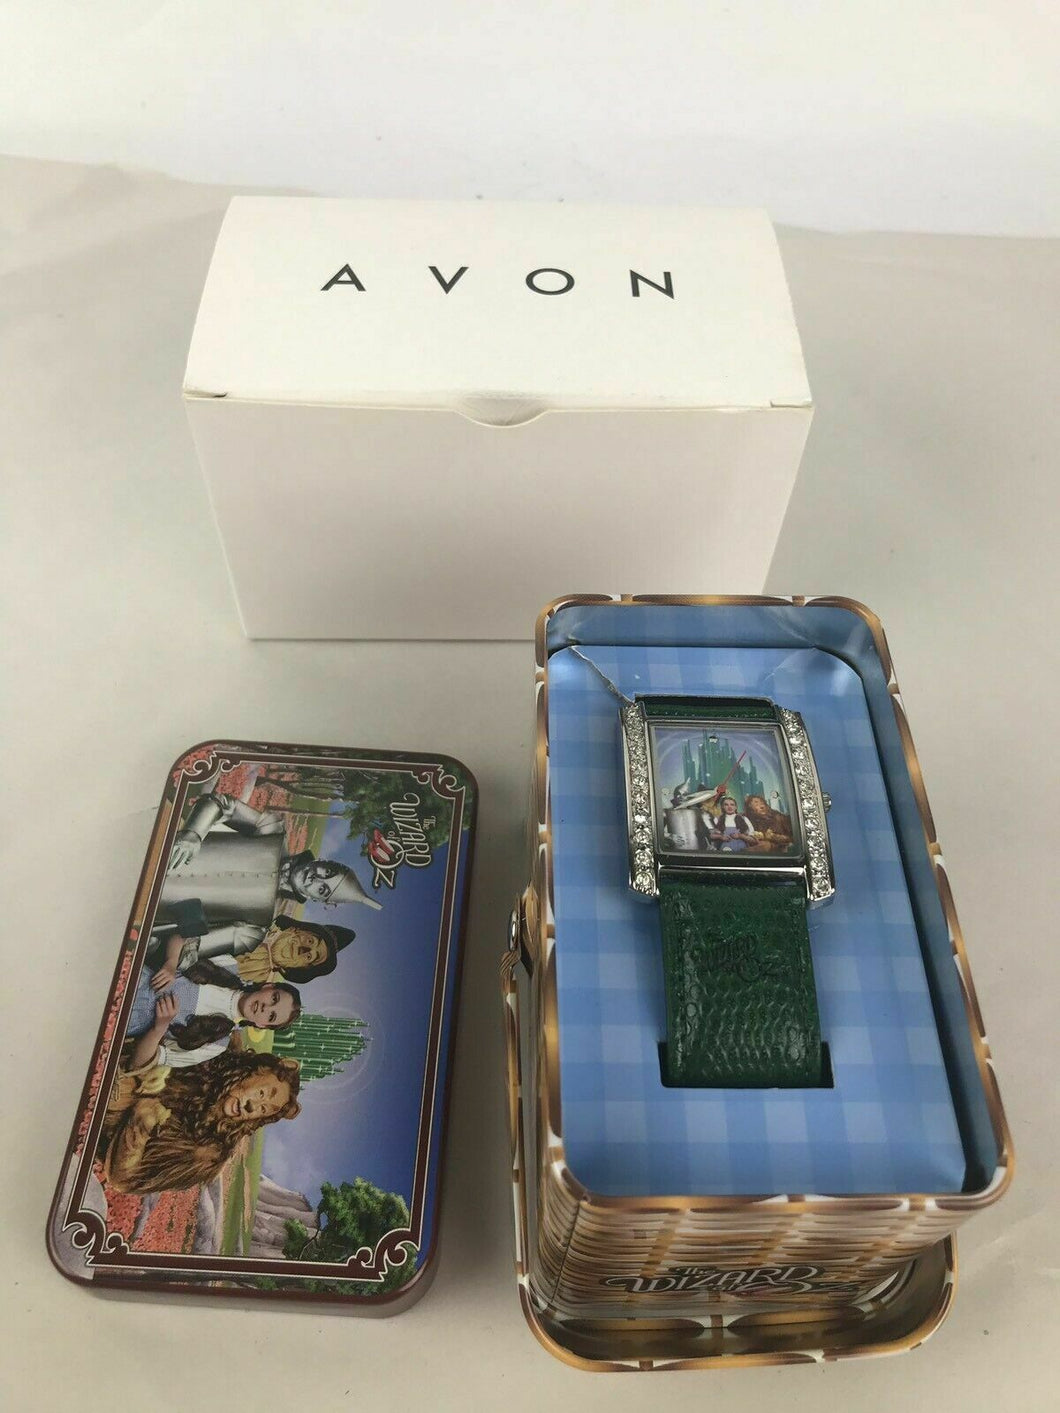 Avon Wizard of Oz 2008 Collectors Watch in Tin Basket - lot 2583